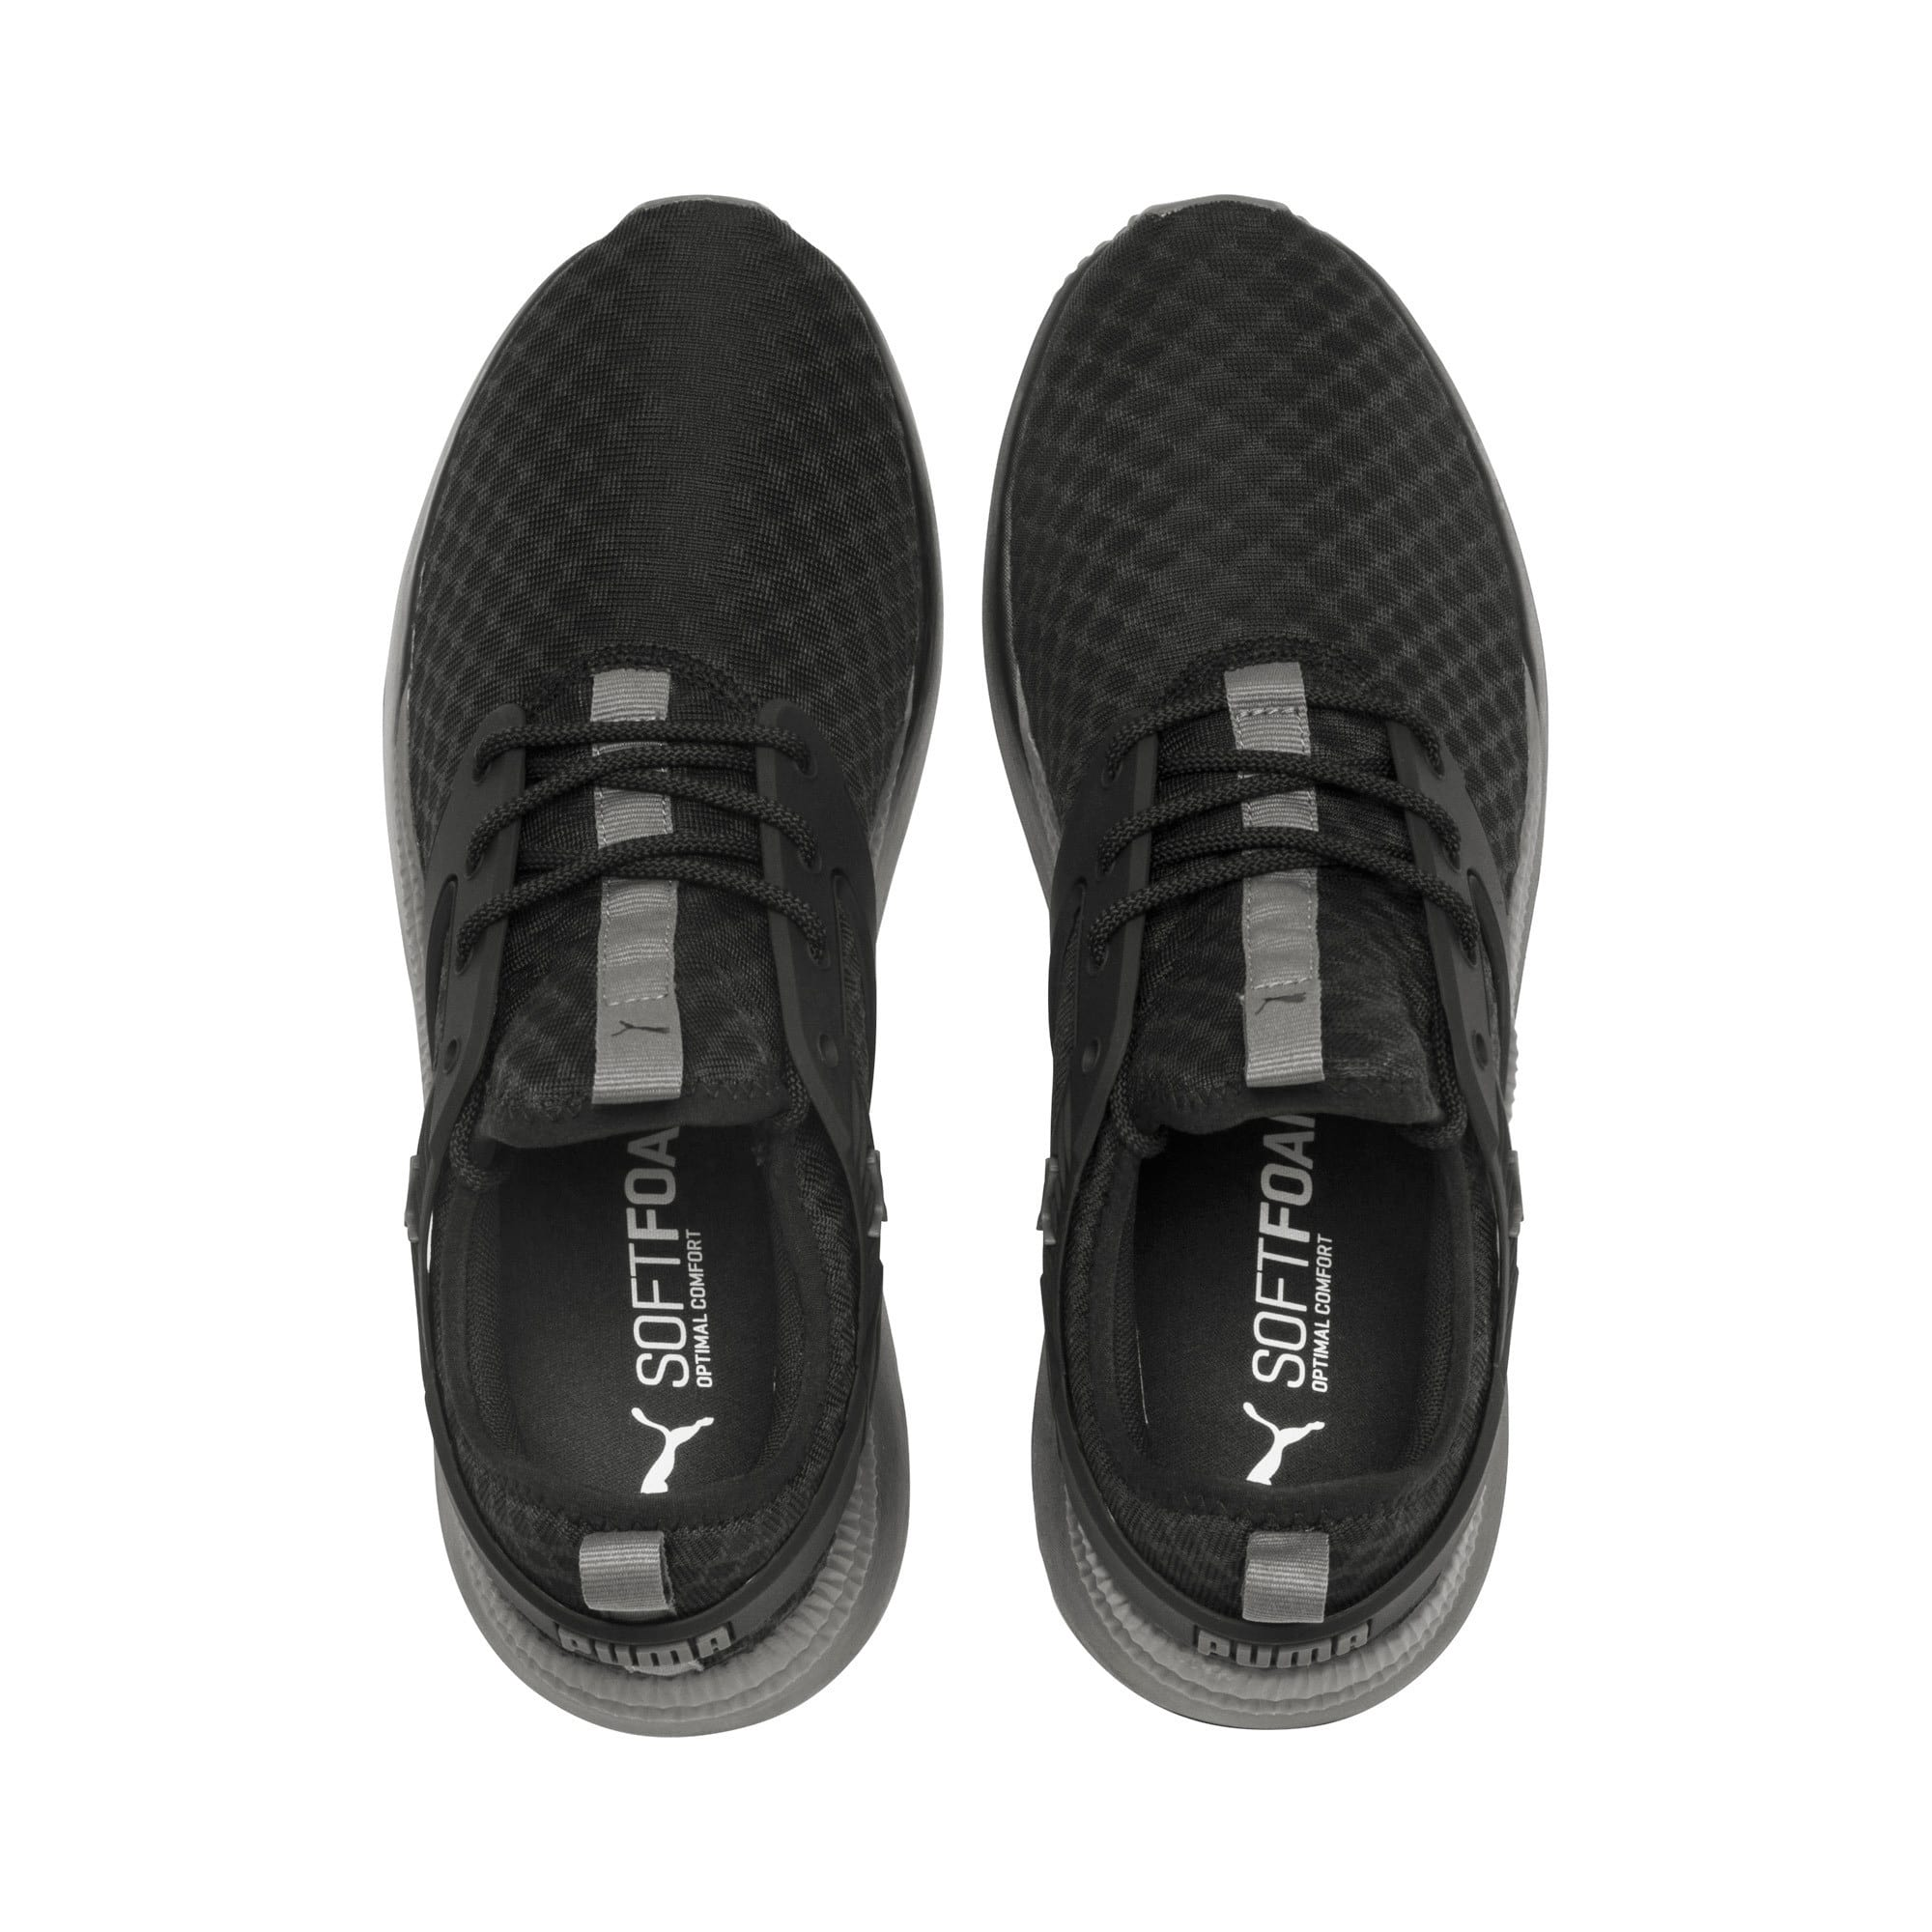 Thumbnail 7 of Pacer Next Excel Core Sneakers, Puma Black-Charcoal Gray, medium